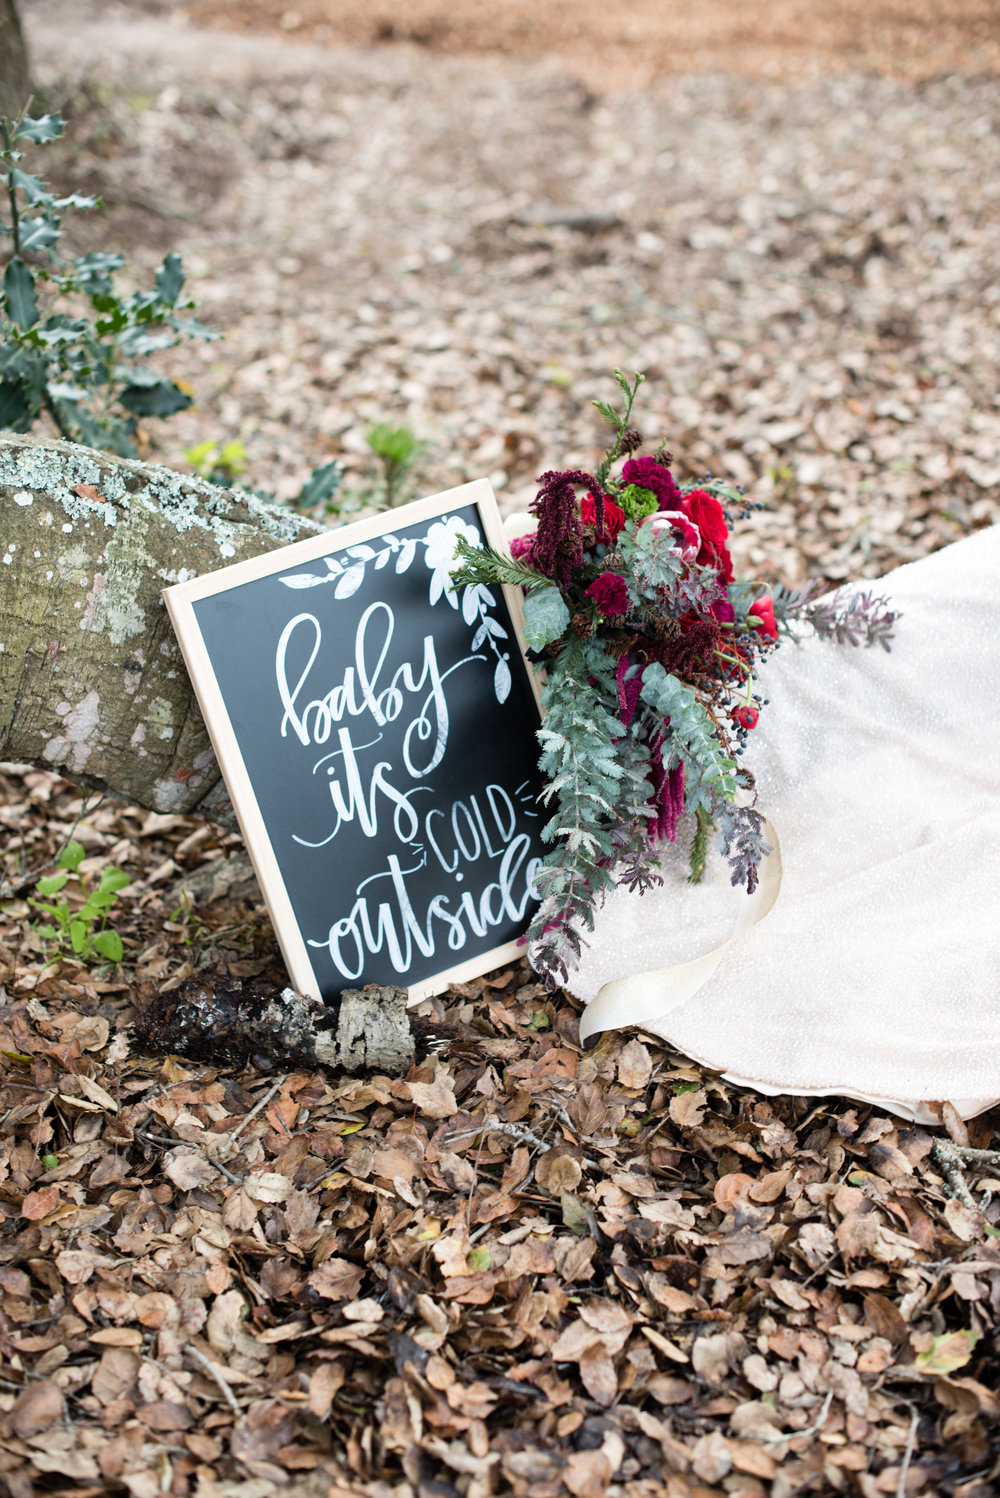 www.santabarbarawedding.com | Carrie Pollard | Church's Christmas Trees | Wedding Sign